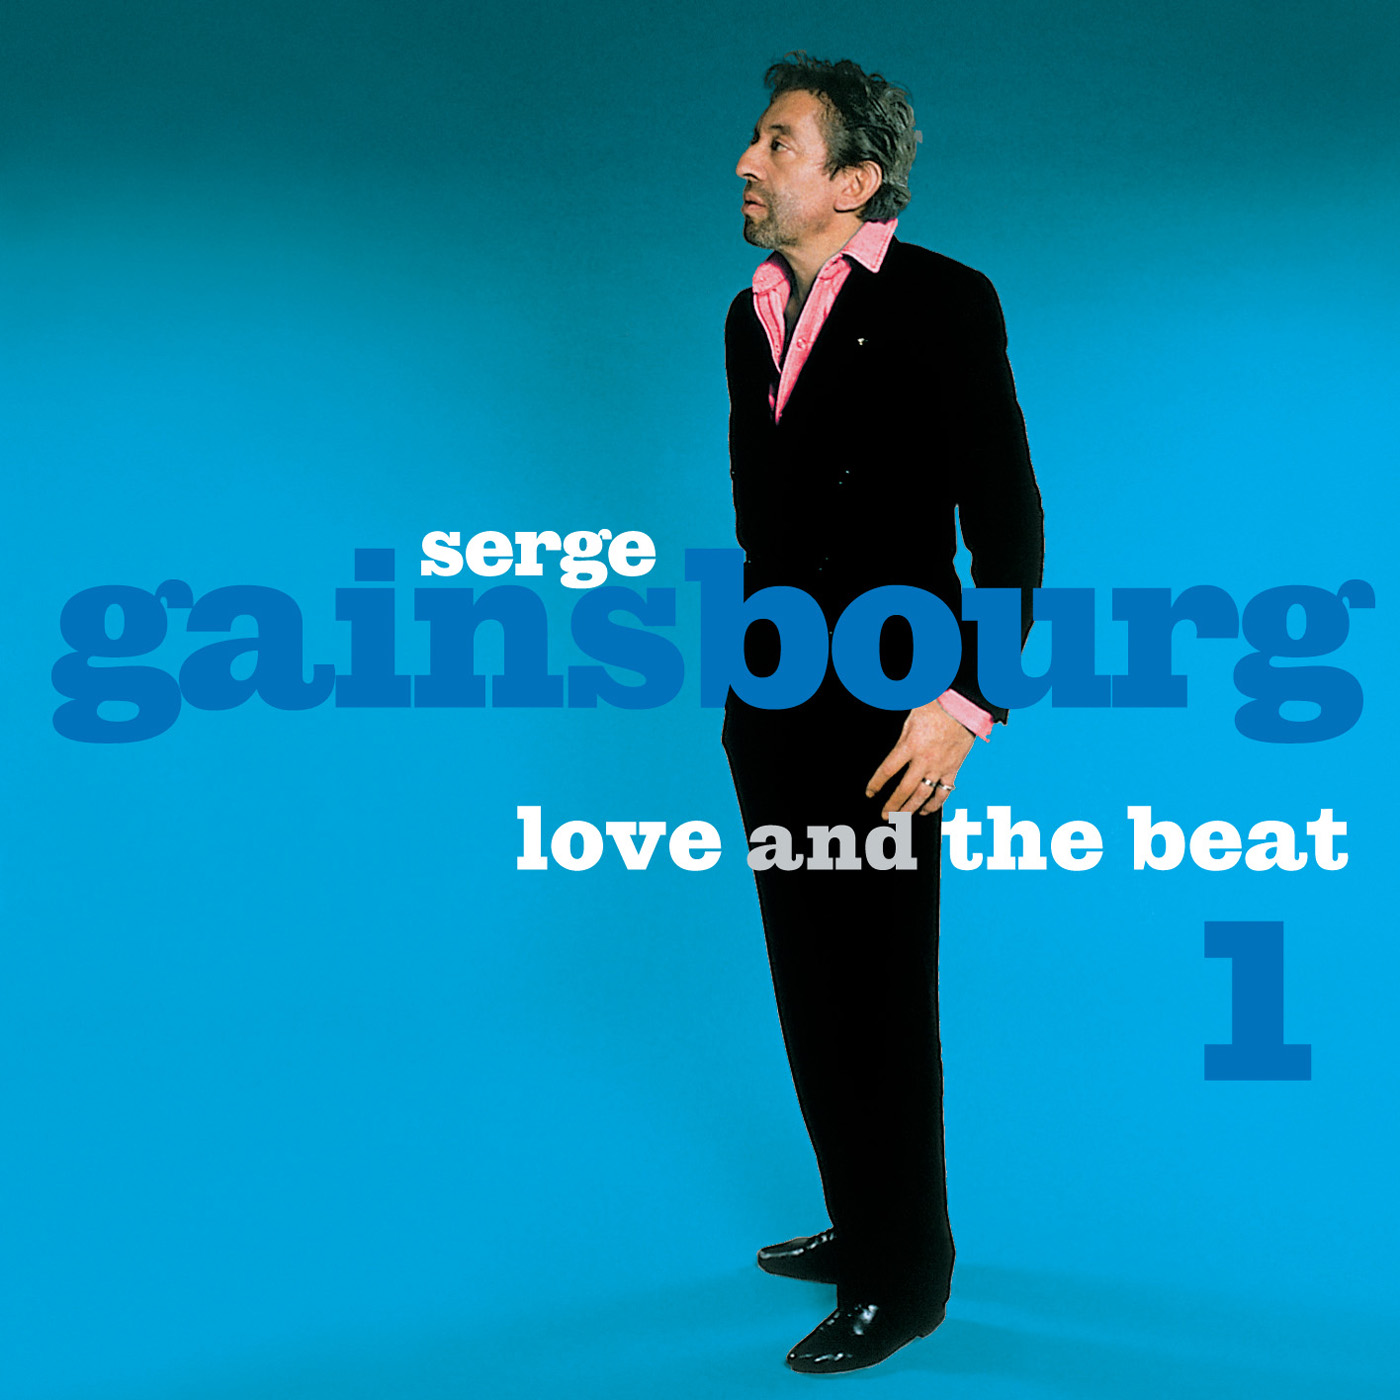 serge gainsbourg comic strip lyrics